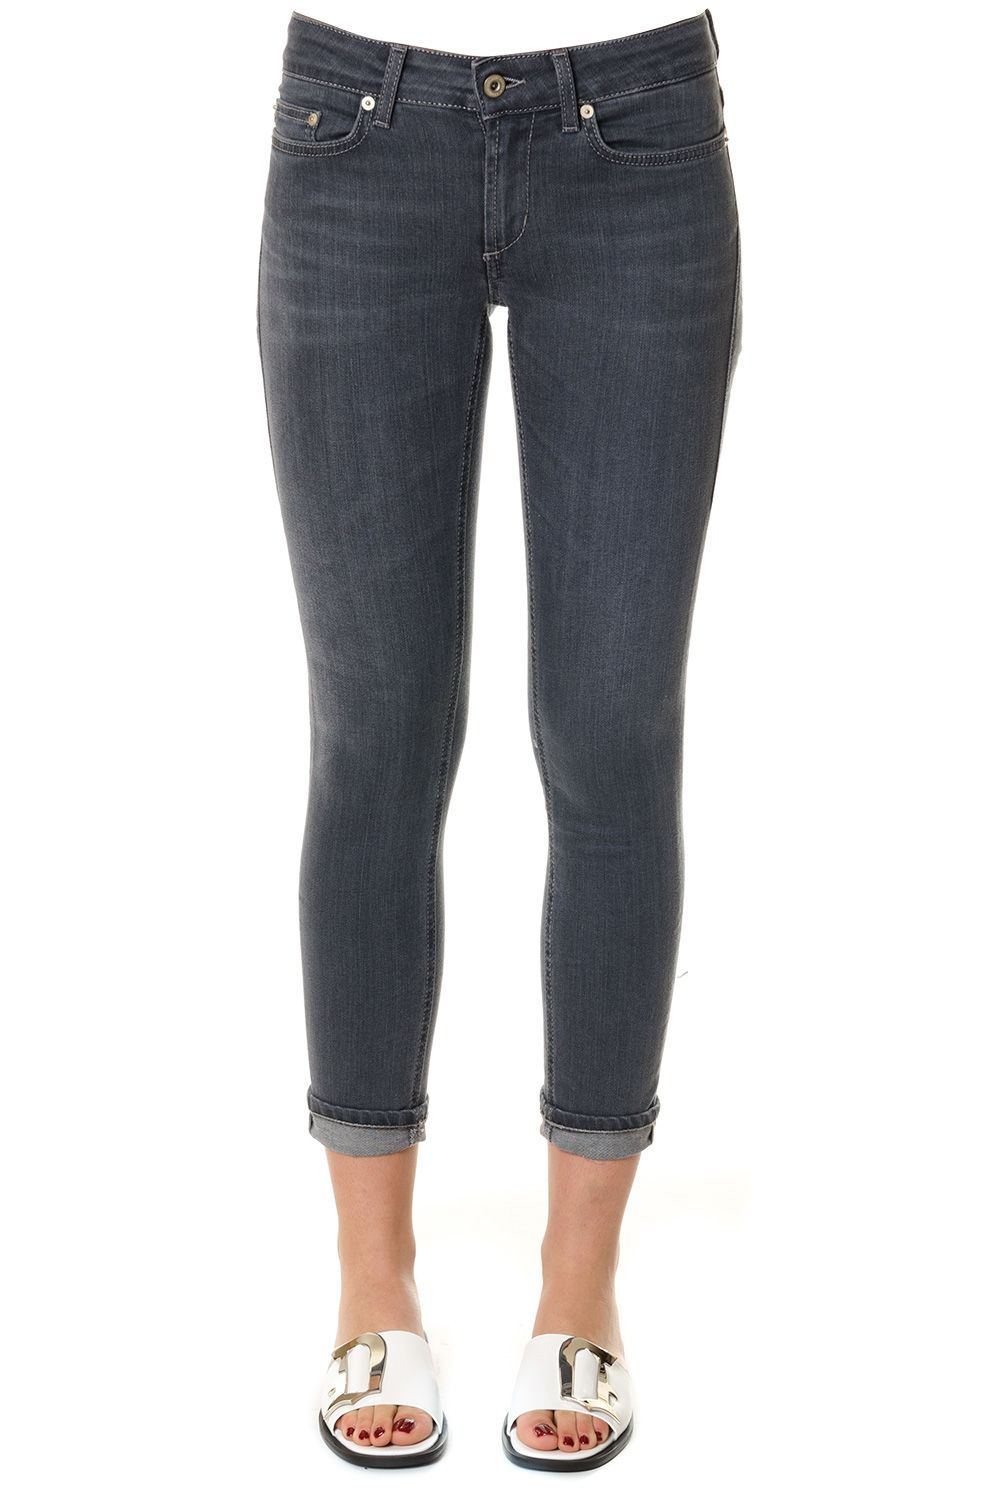 Dondup Monroe Denim Stretch Jeans